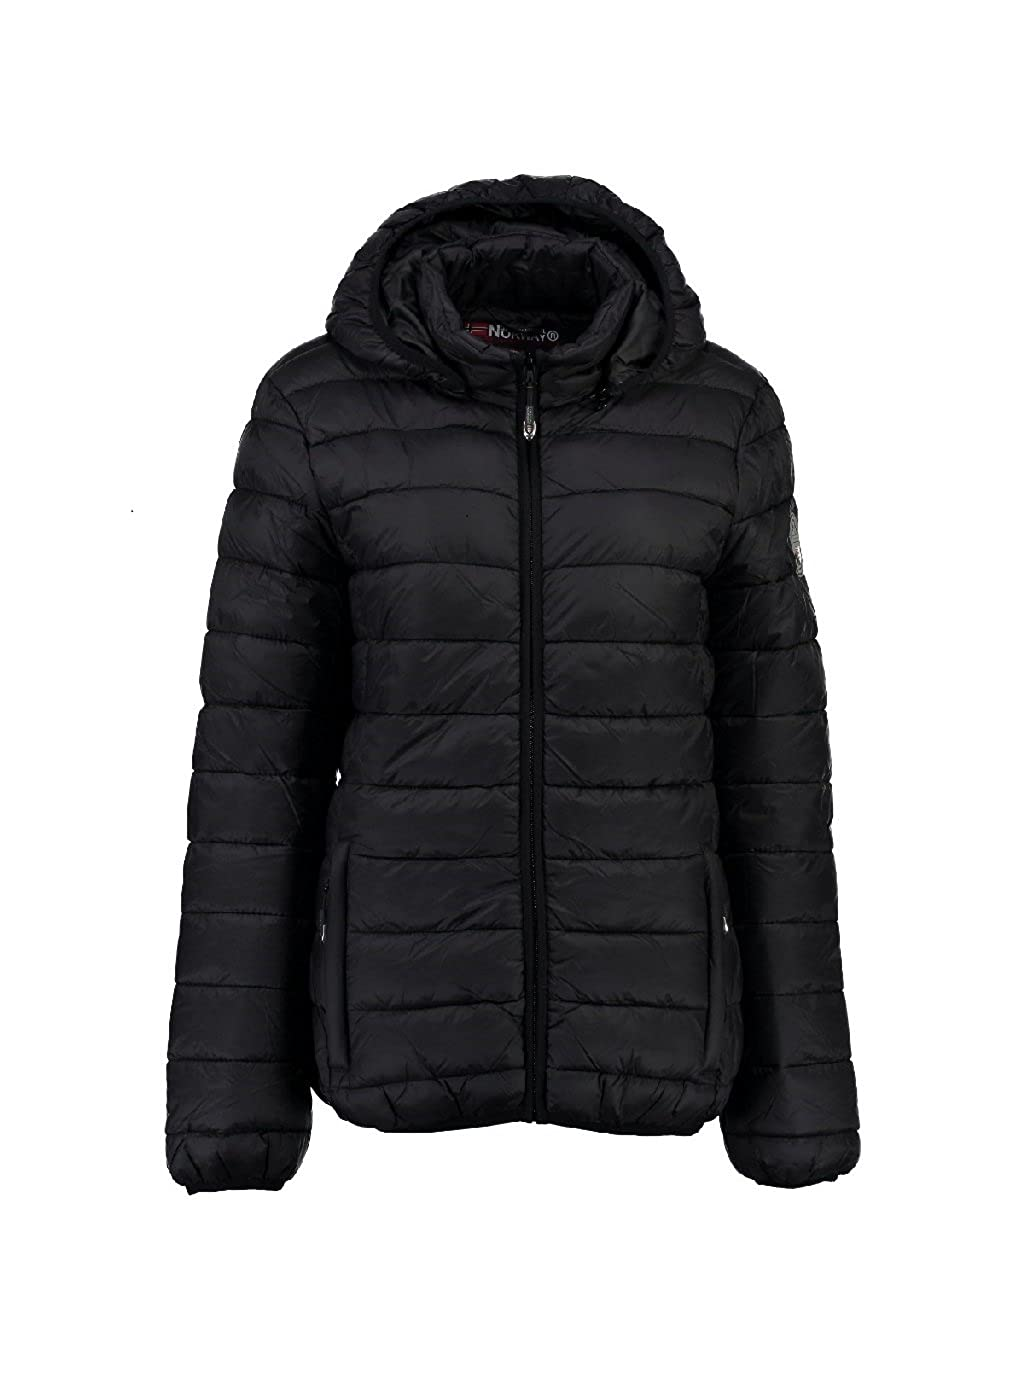 Geographical Norway WN642F/GN, Chaqueta Para Mujer